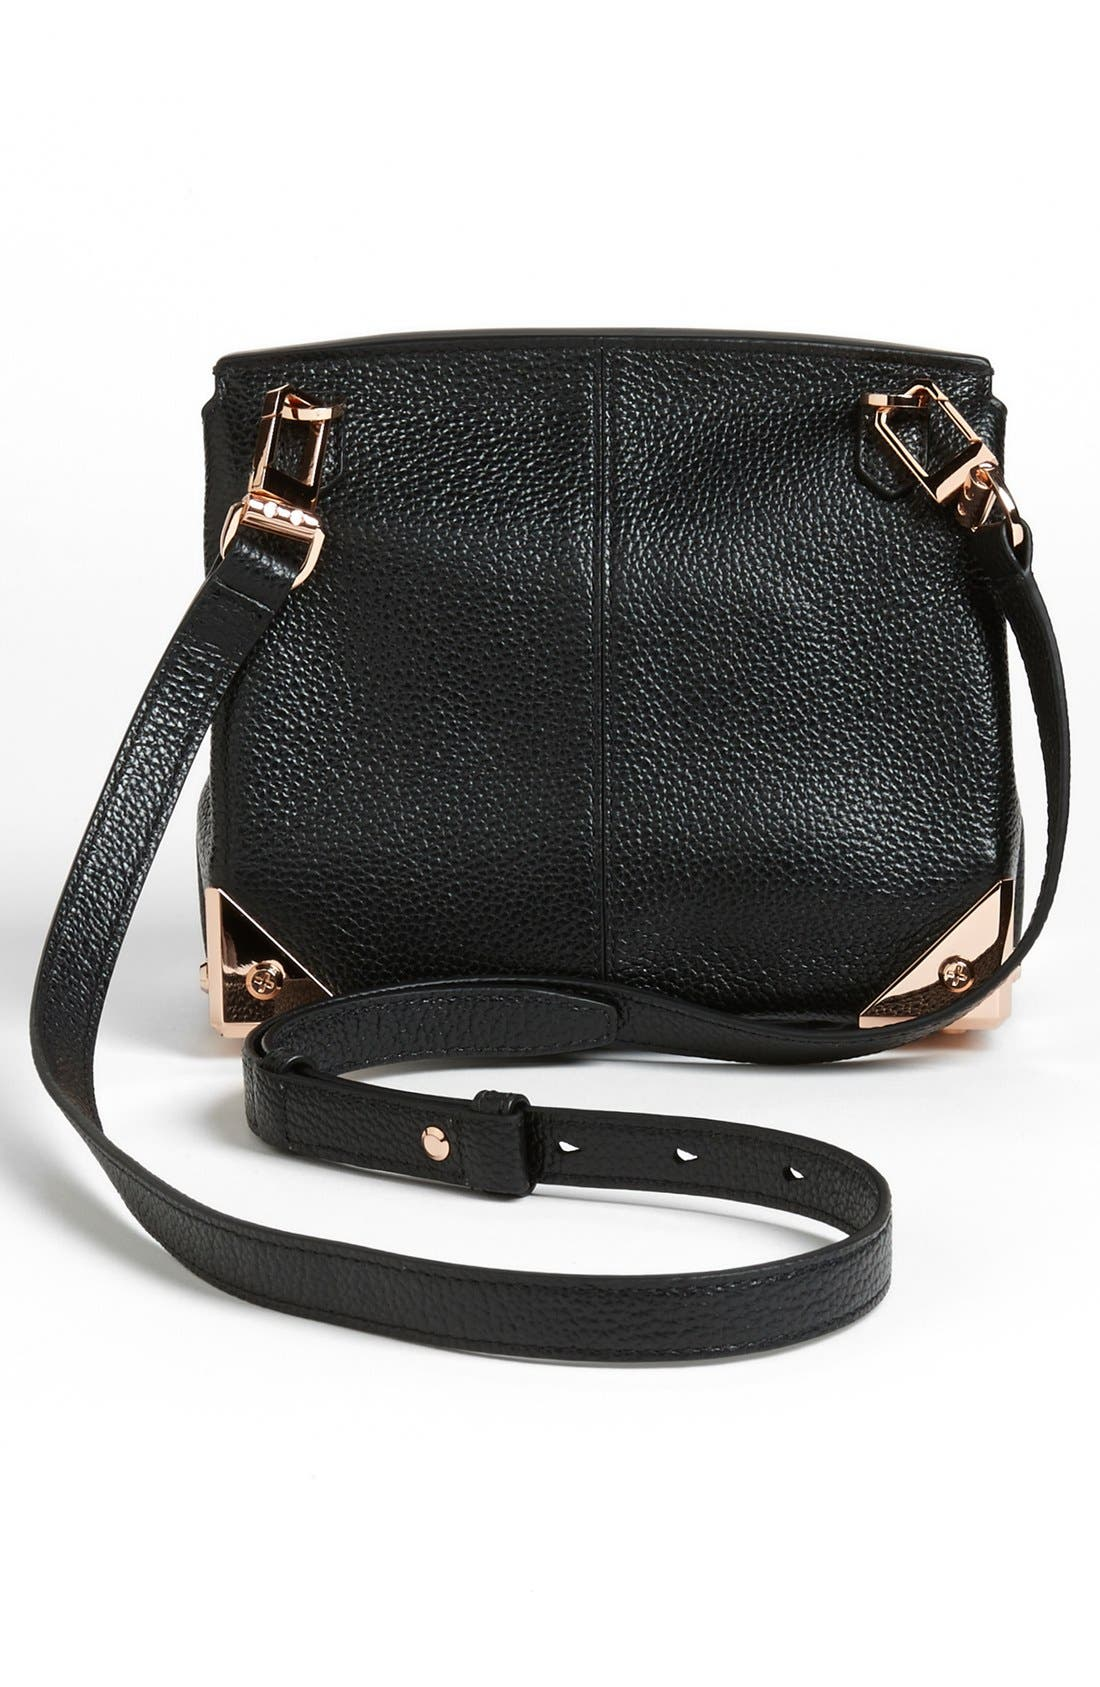 ALEXANDER WANG,                             'Marion - Prisma' Leather Crossbody Bag,                             Alternate thumbnail 2, color,                             001